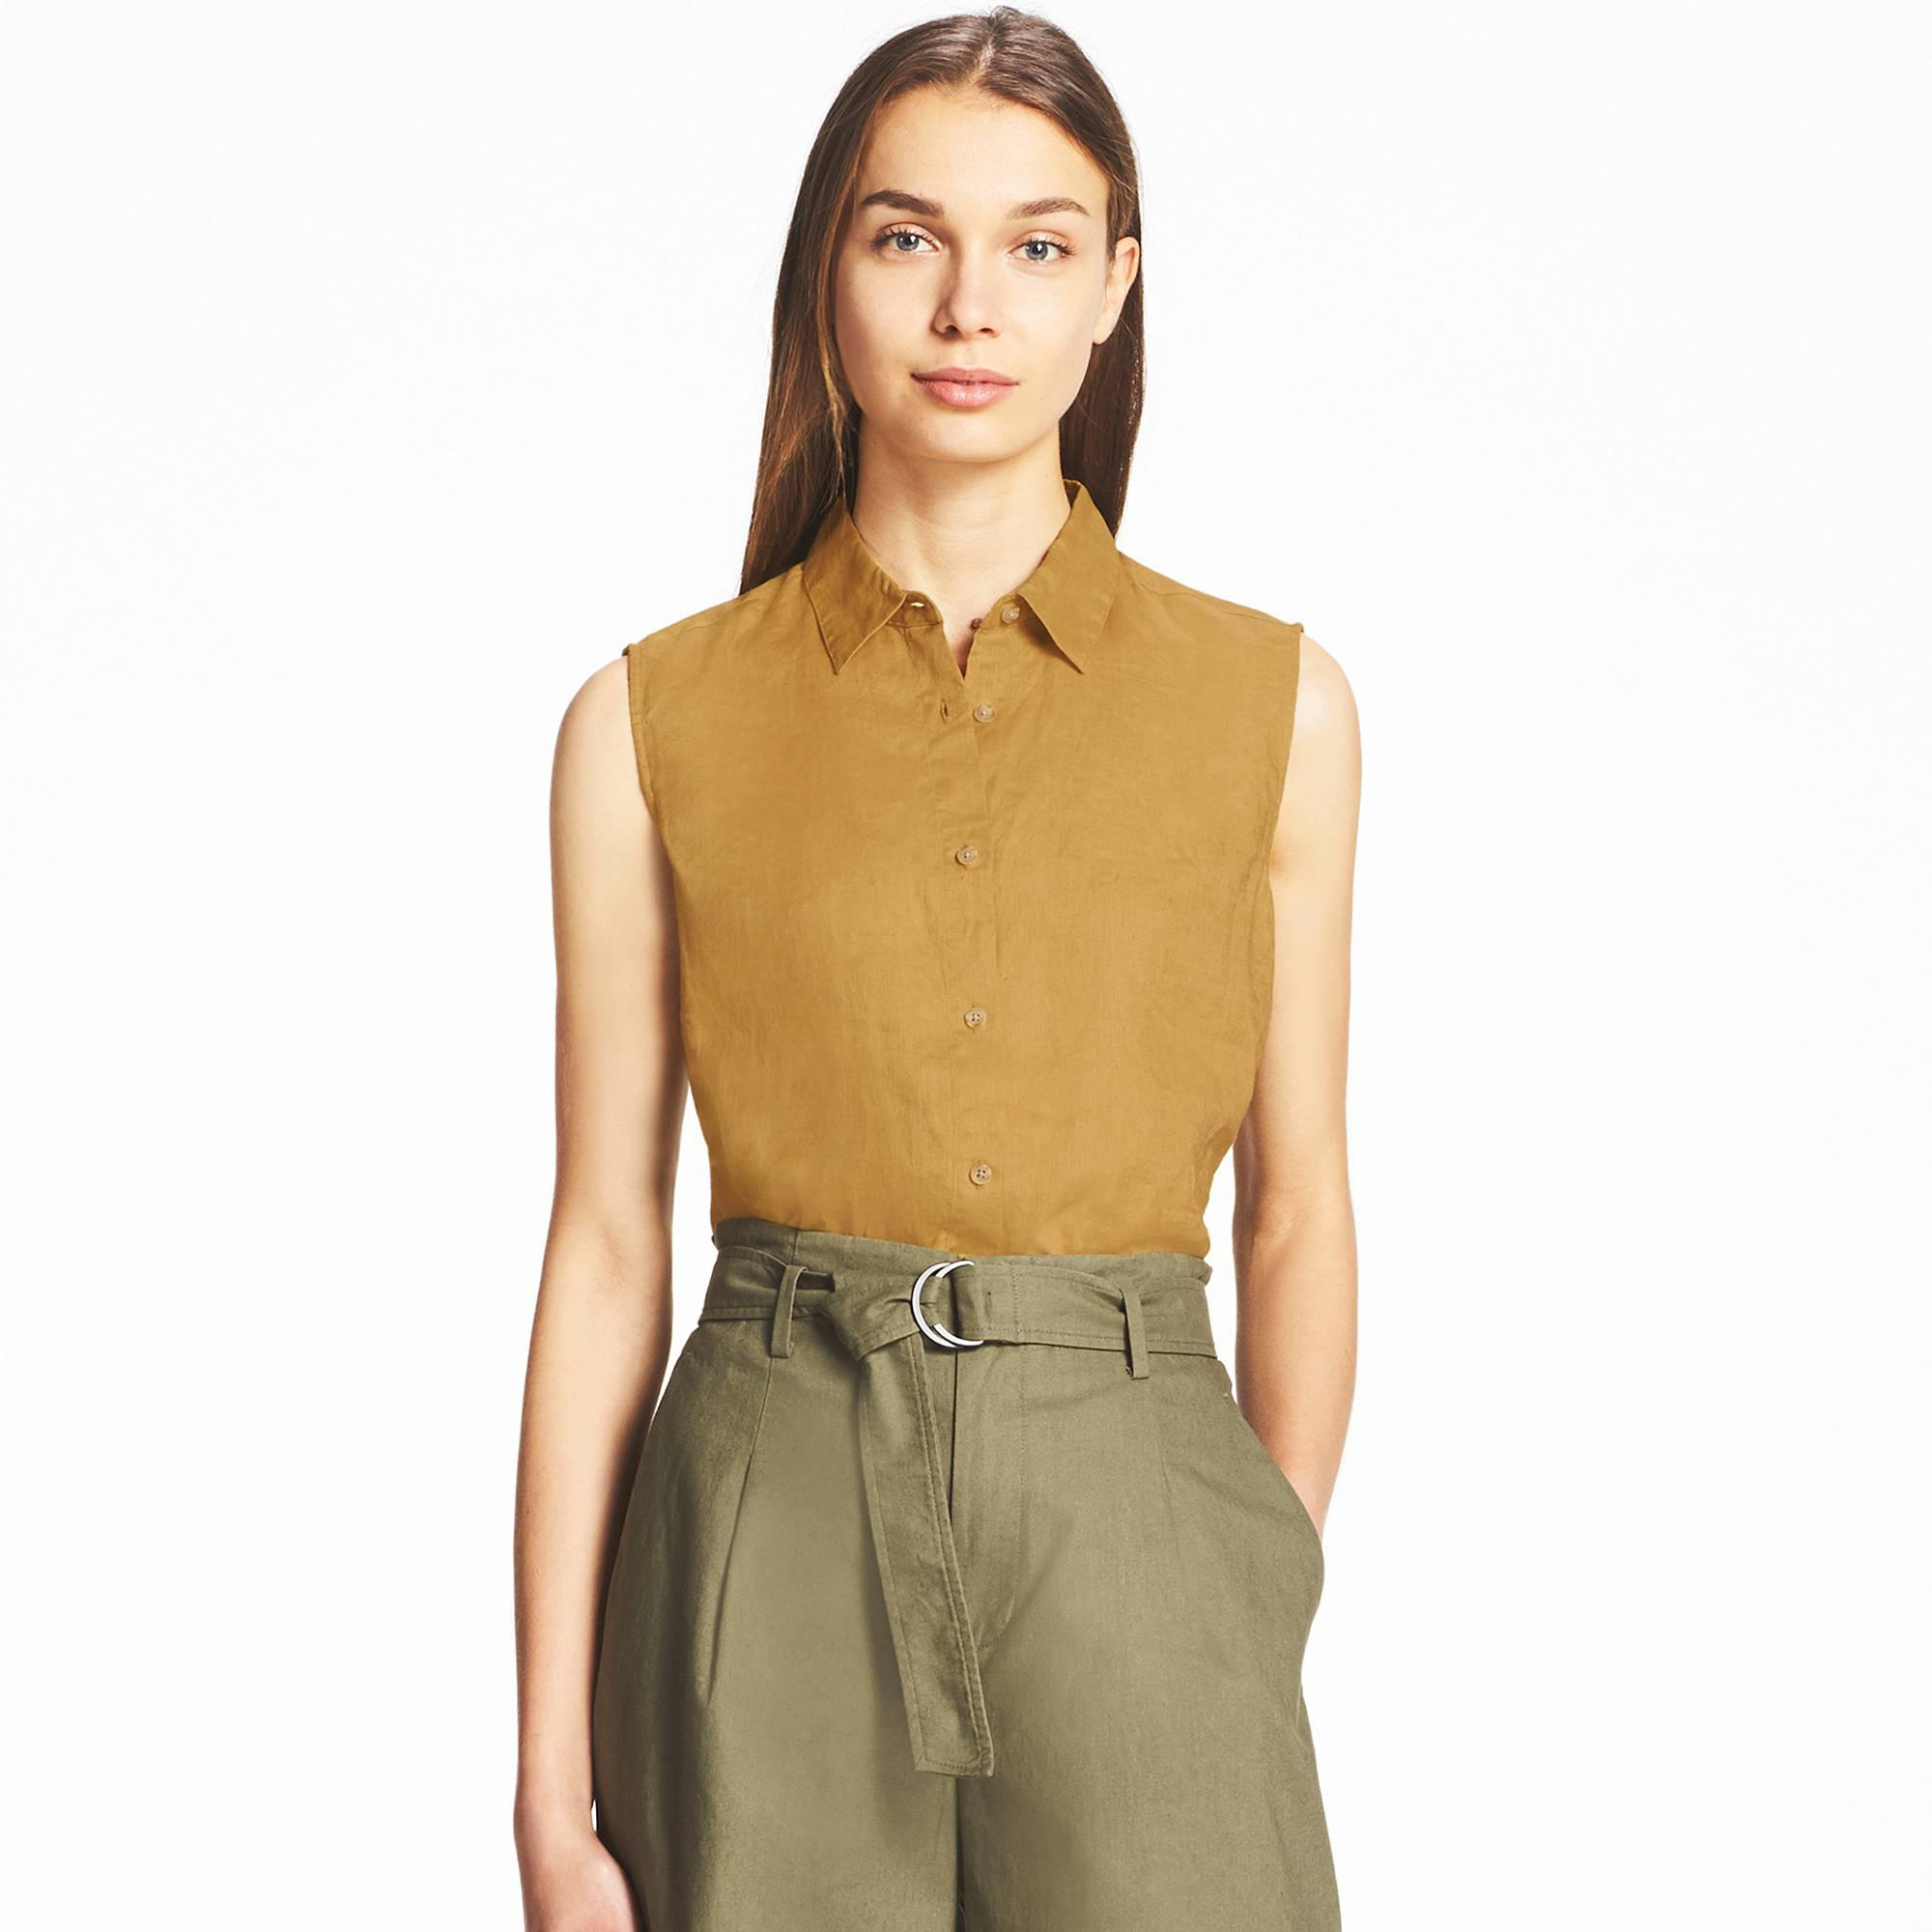 cca0e11fcaa17 Lyst - Uniqlo Linen Sleeveless Shirt in Yellow